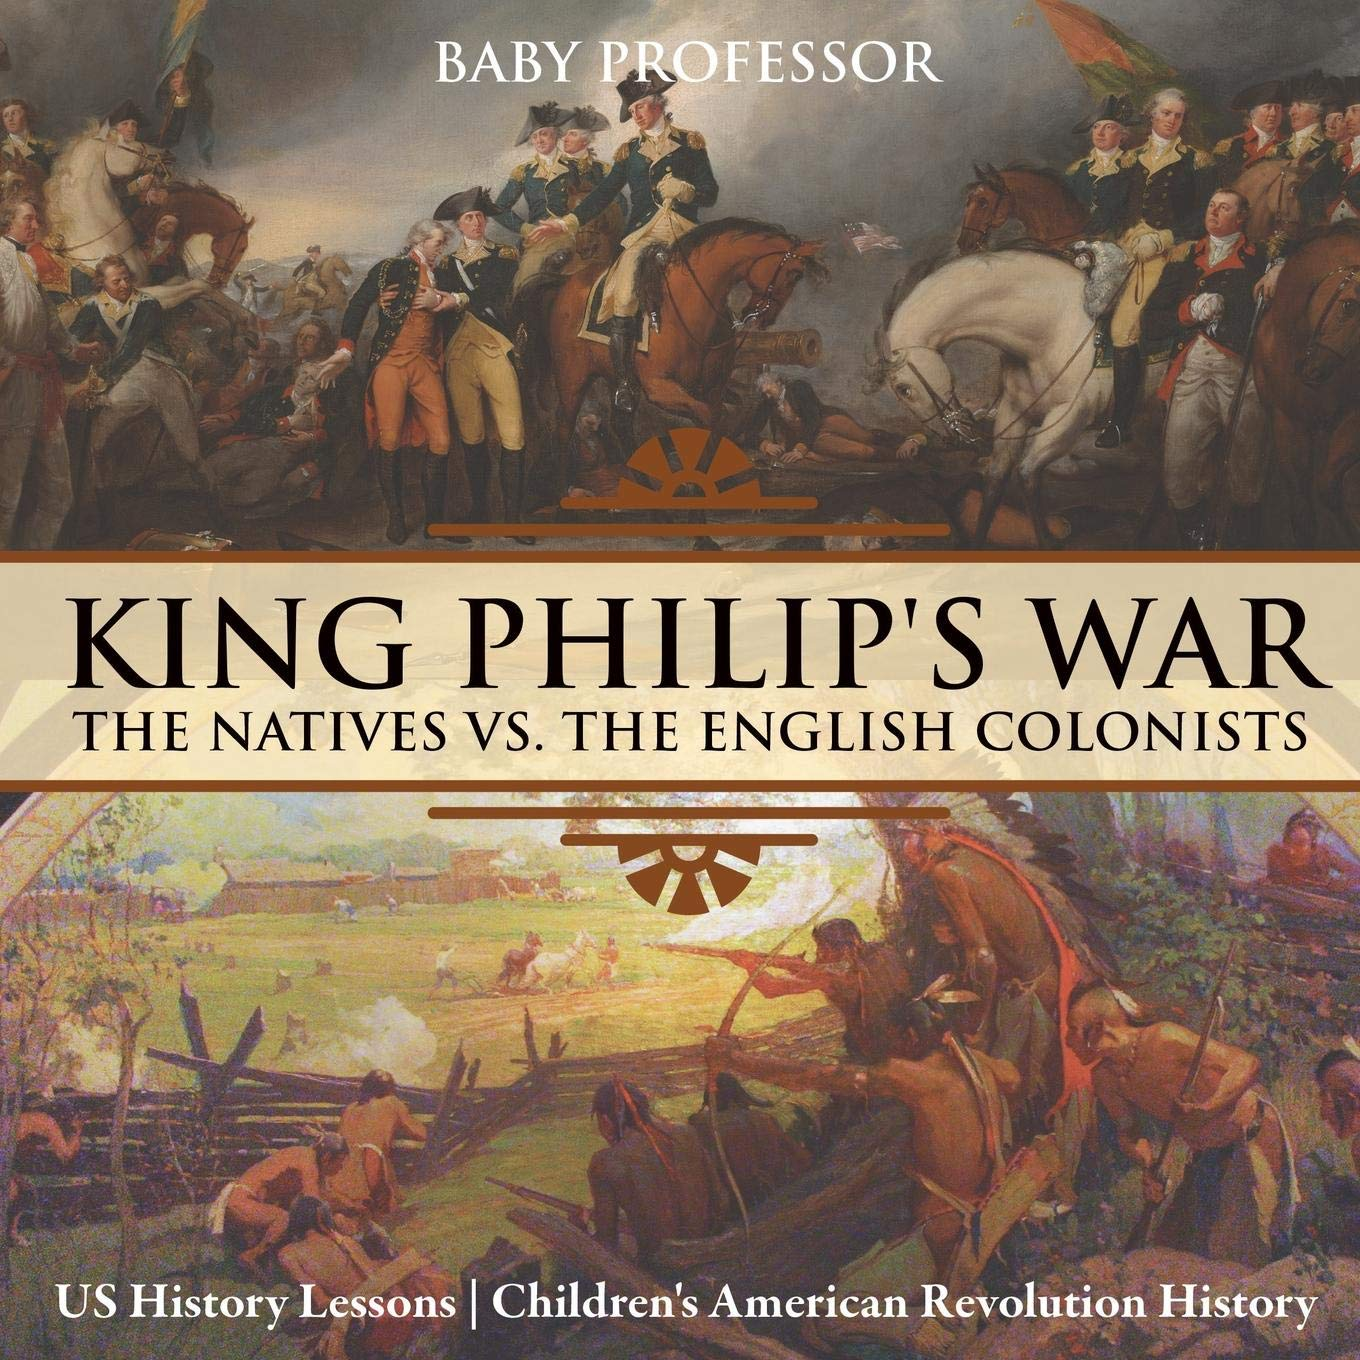 Download King Philip's War : The Natives vs. The English Colonists - US History Lessons  Children's American Revolution History ebook